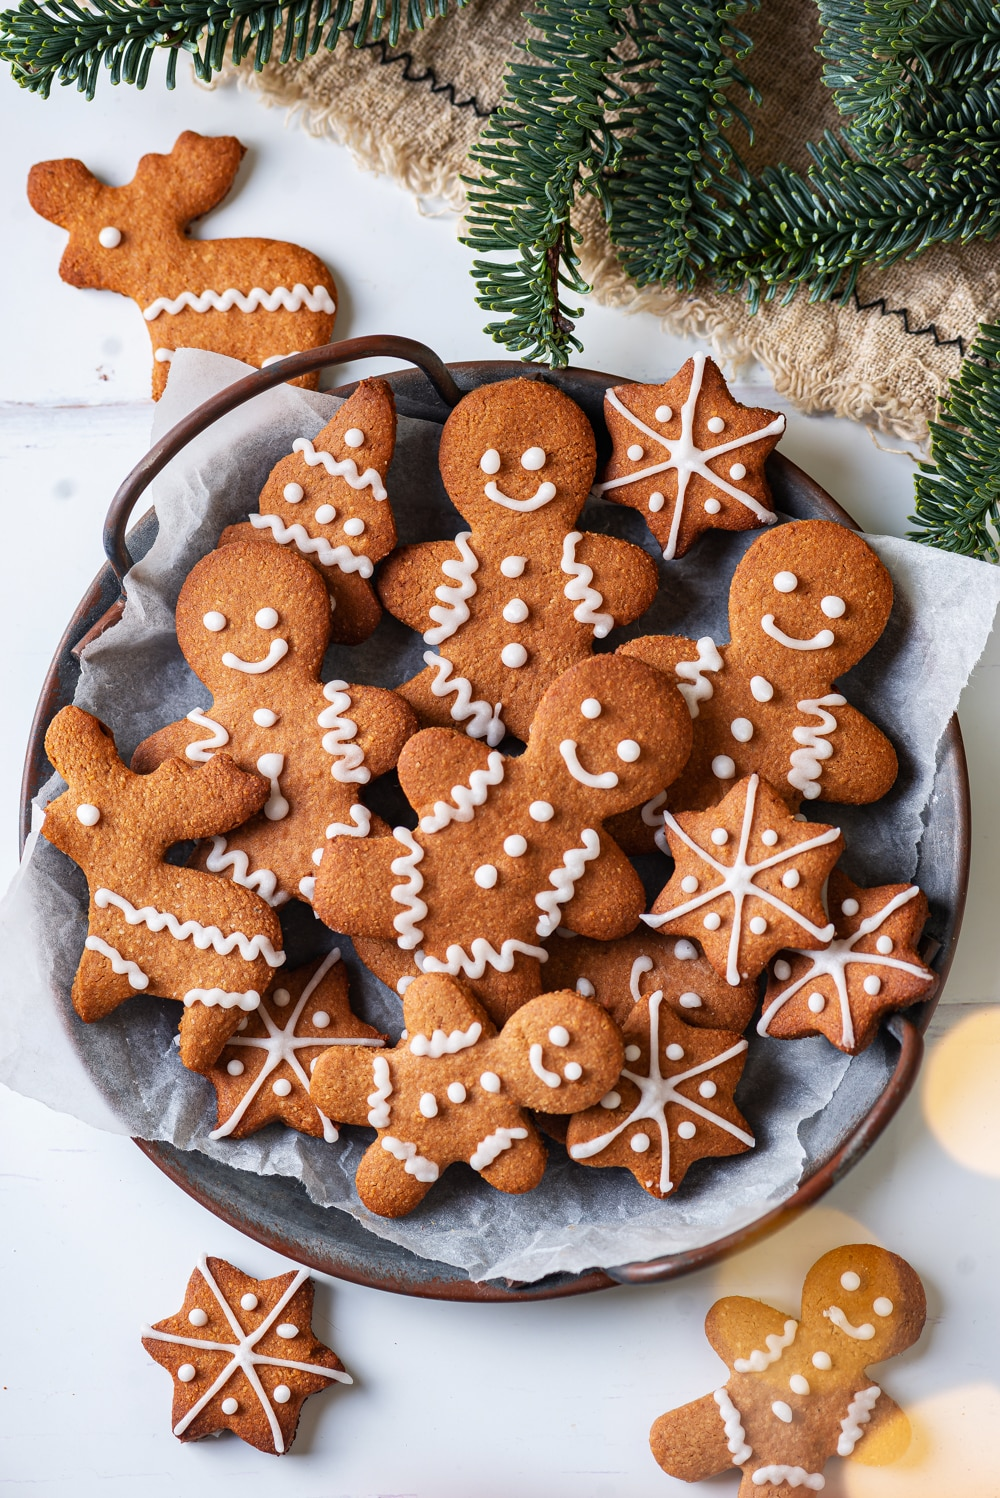 A grey plate with gingerbread cookies on it. Green pine branches are above the plate.